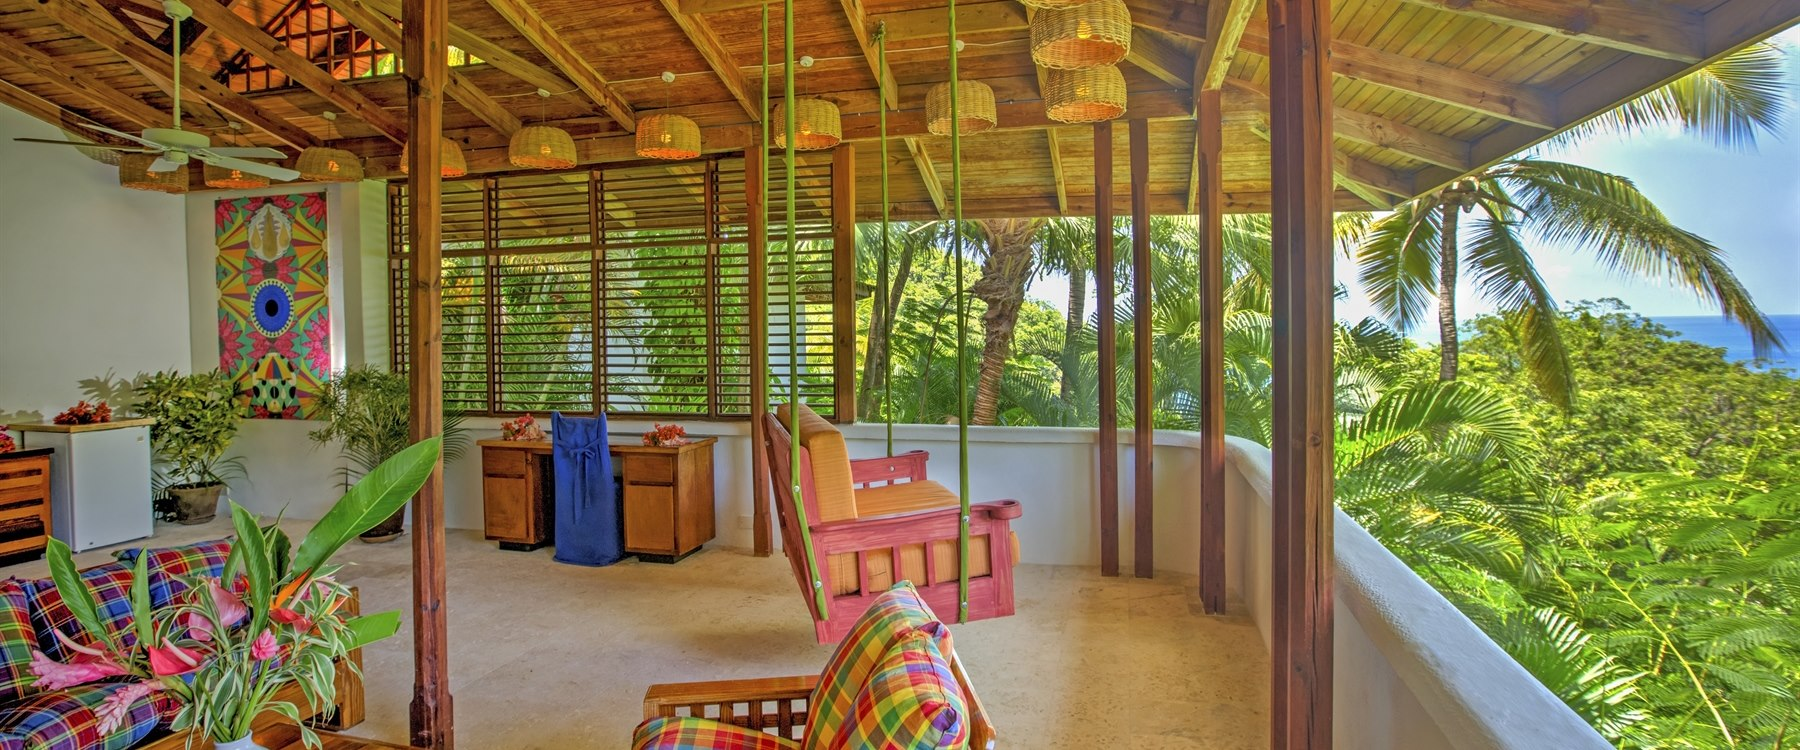 Hillside Deluxe Room at Anse Chastanet, St Lucia